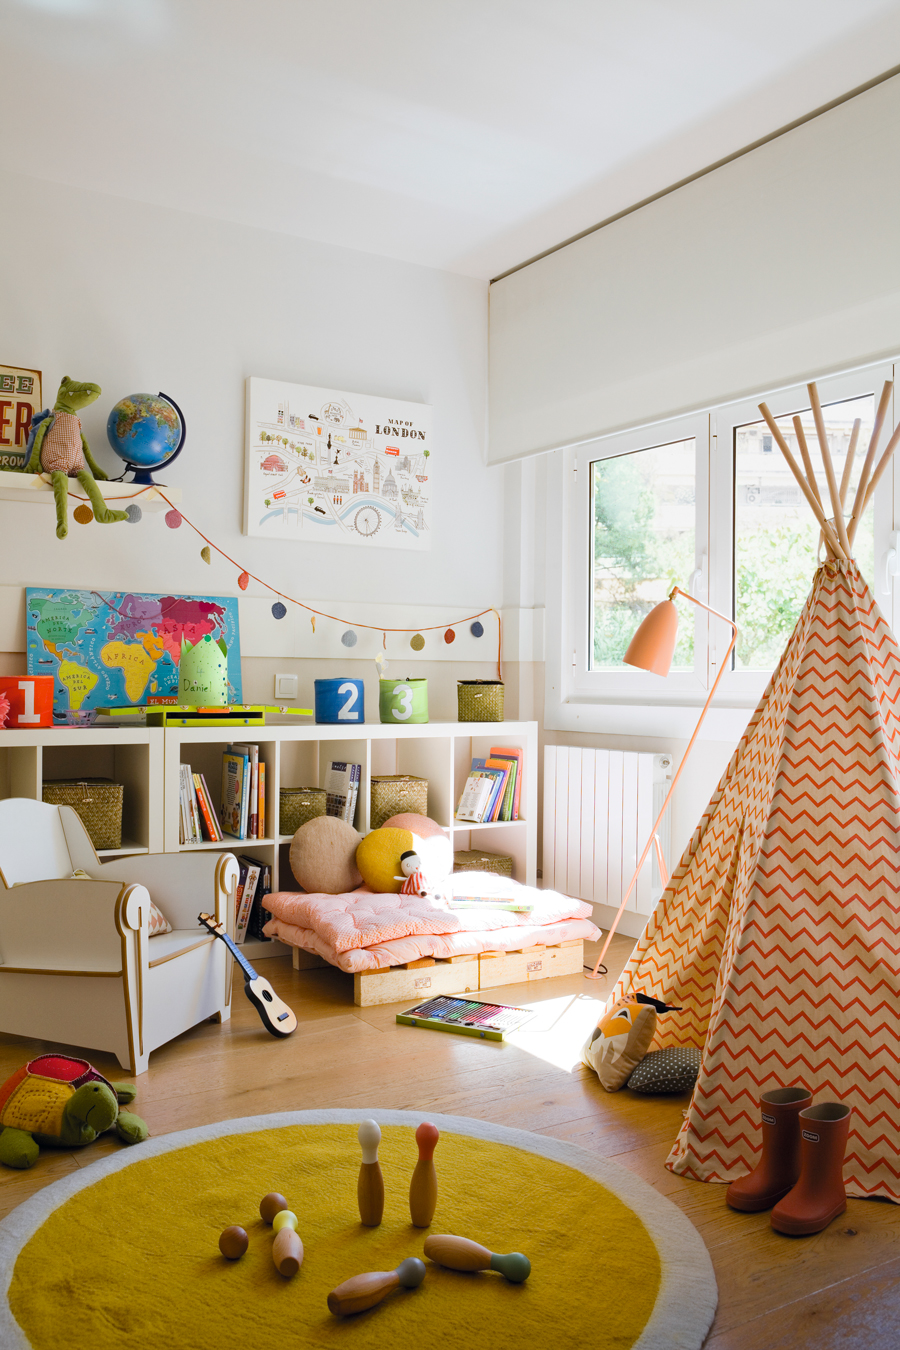 10 ideas para decorar la habitaci n infantil perfecta for Habitacion 3 ninos